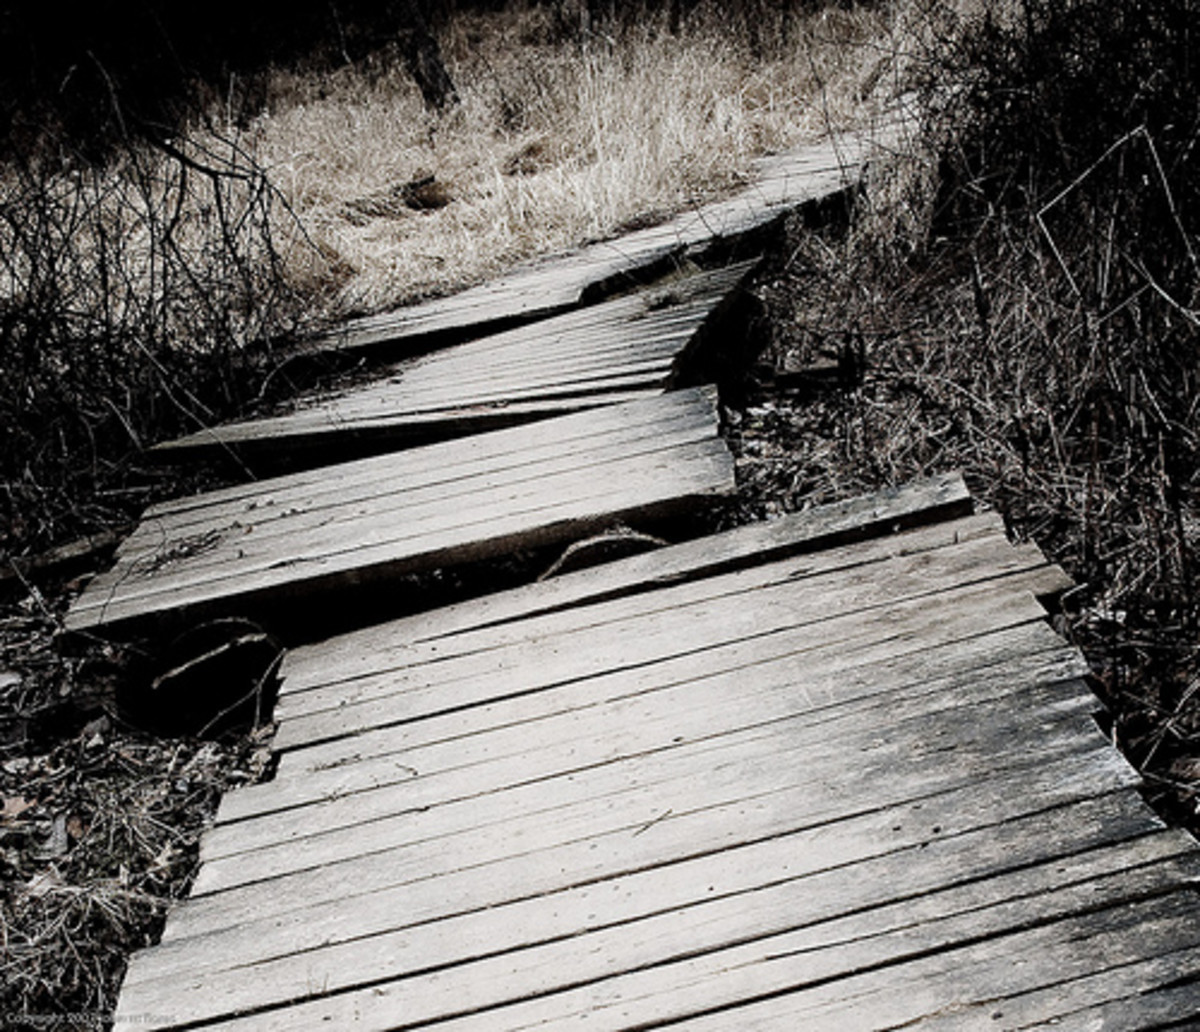 . . . they all end up leaving those who follow disappointed, lost, and broken.